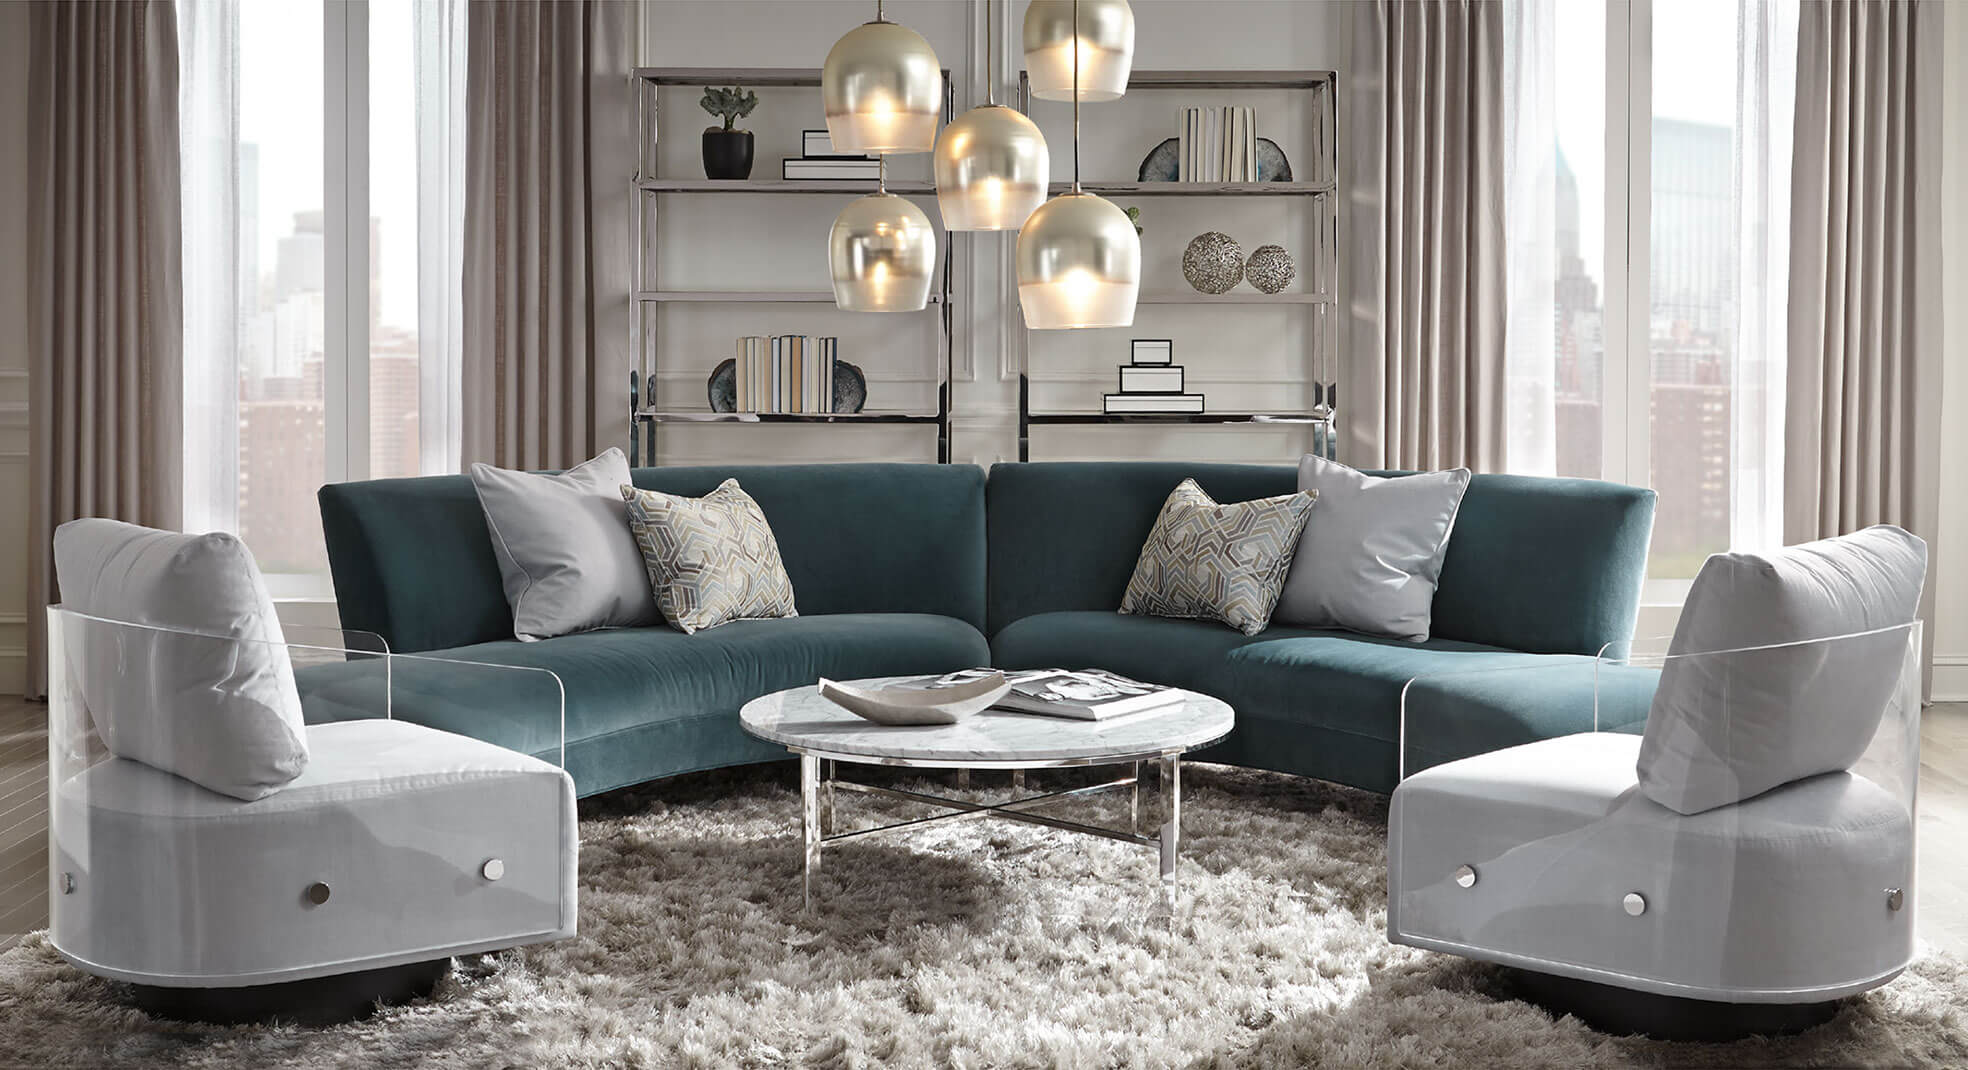 Lucy swivel chairs and Living room setting